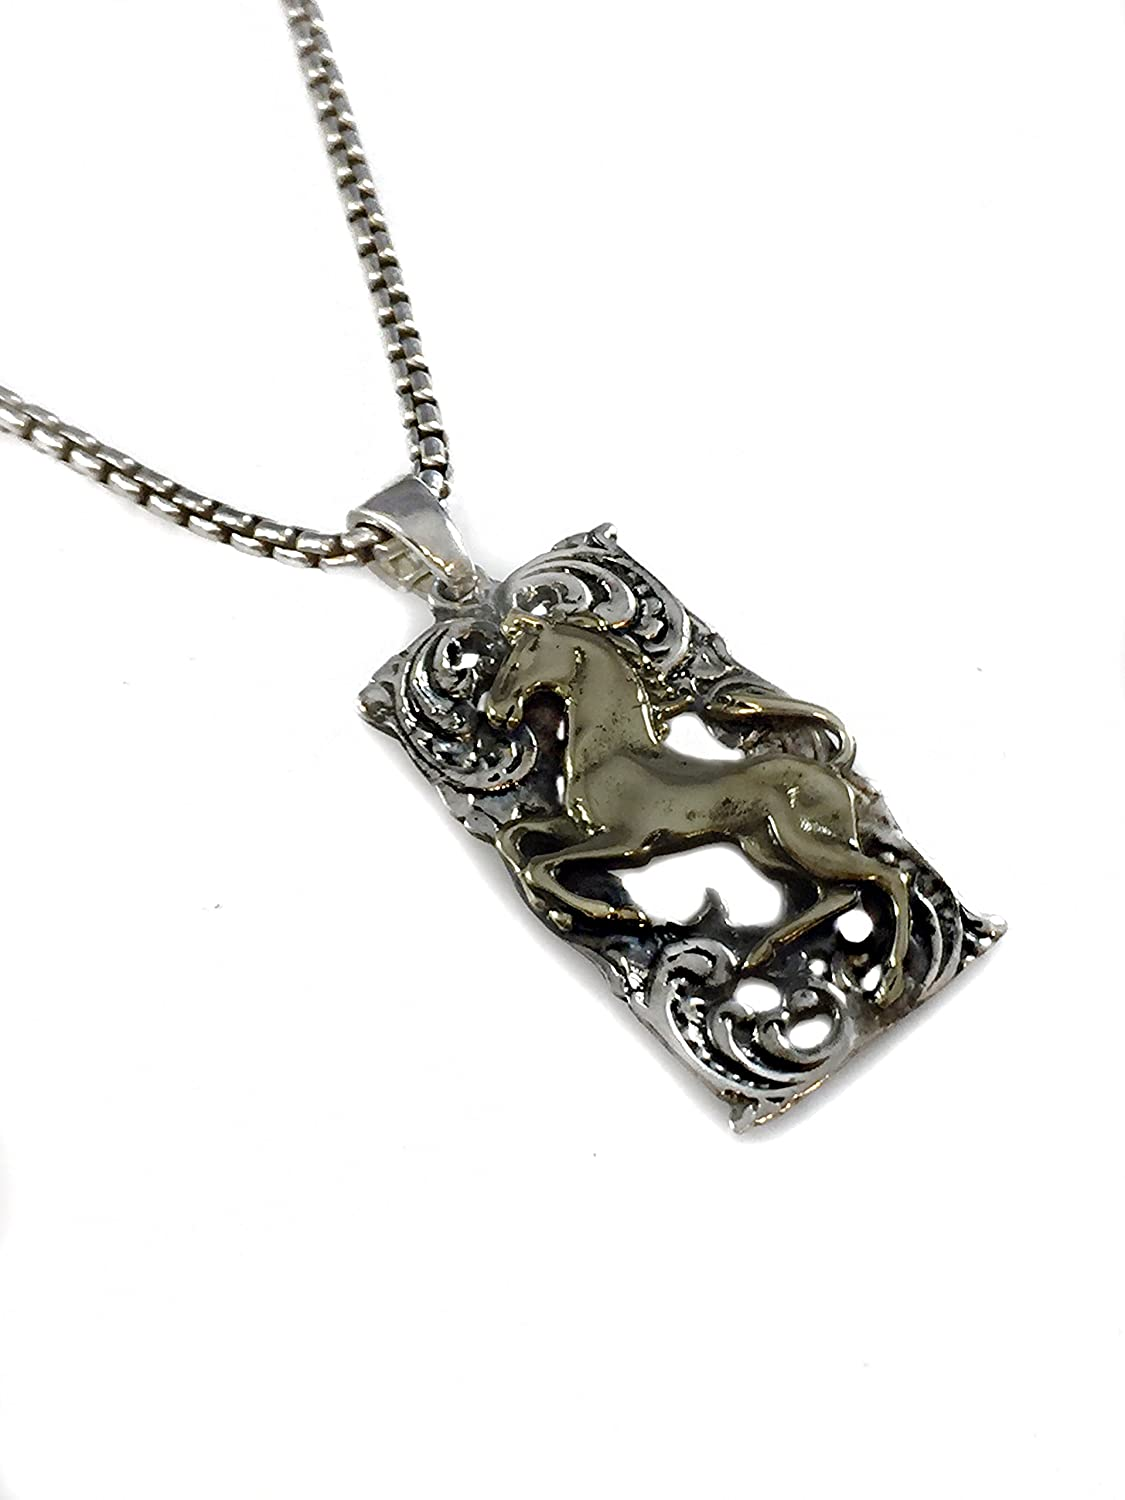 SILVERLAND1 Vintage Mustang Horse Pendant Brass /& Sterling Silver 925 Handmade By Ezi Zino